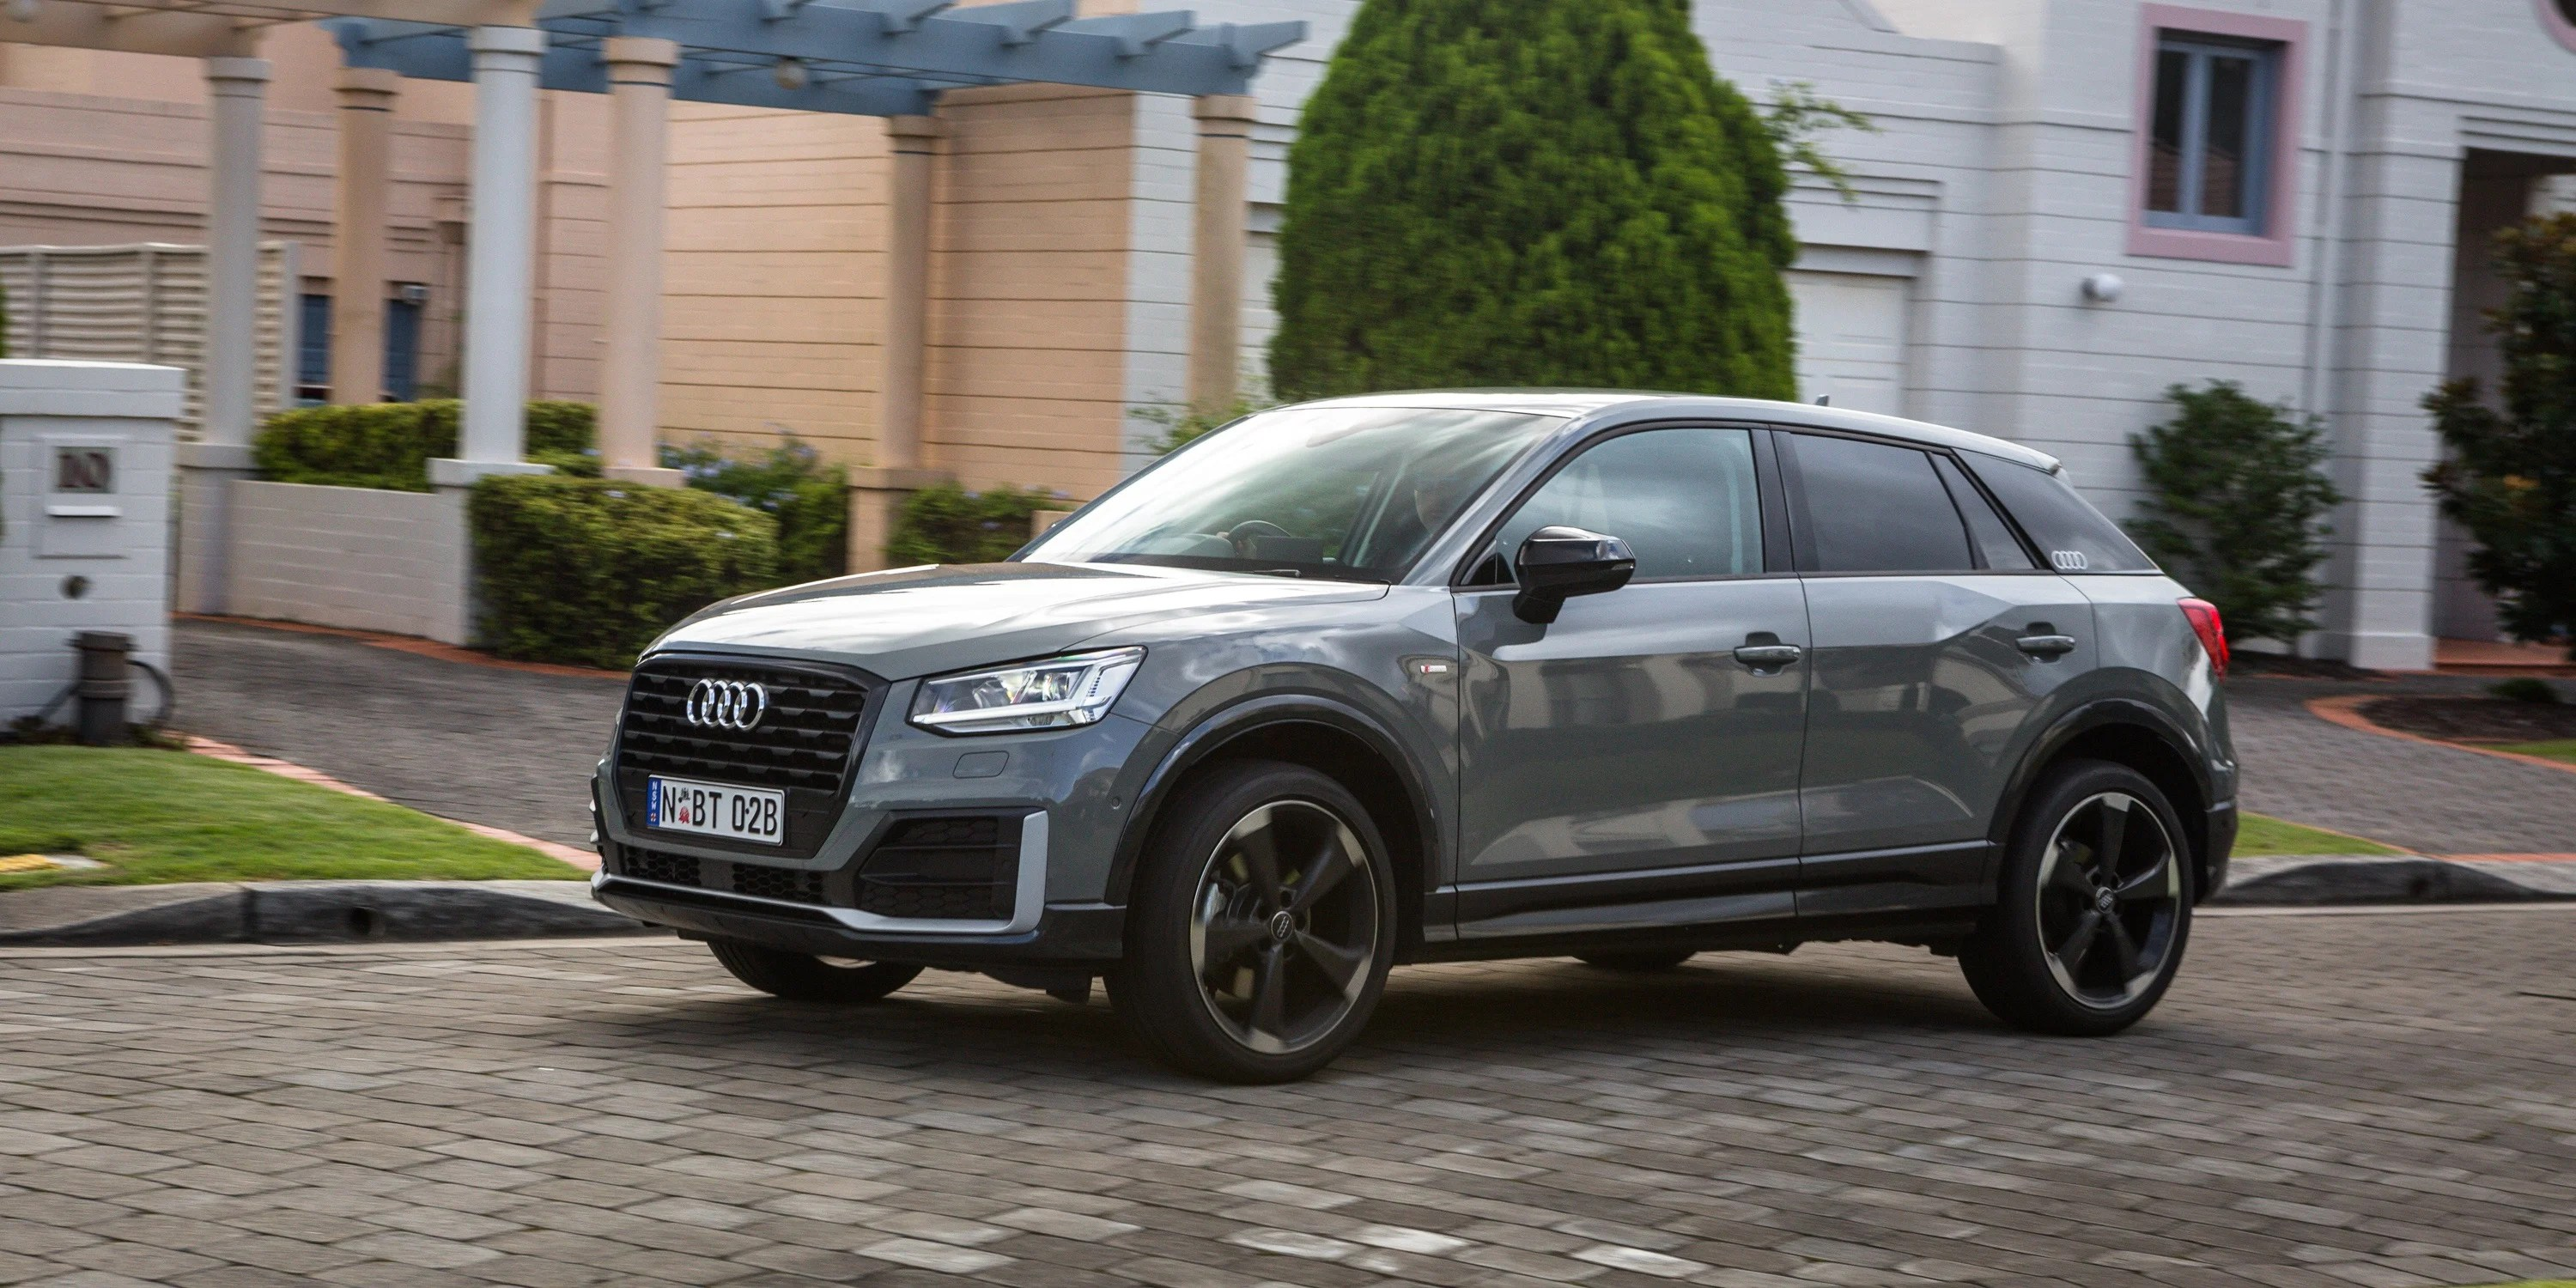 2017 Audi Q2 14 TFSI Edition 1 Review CarAdvice